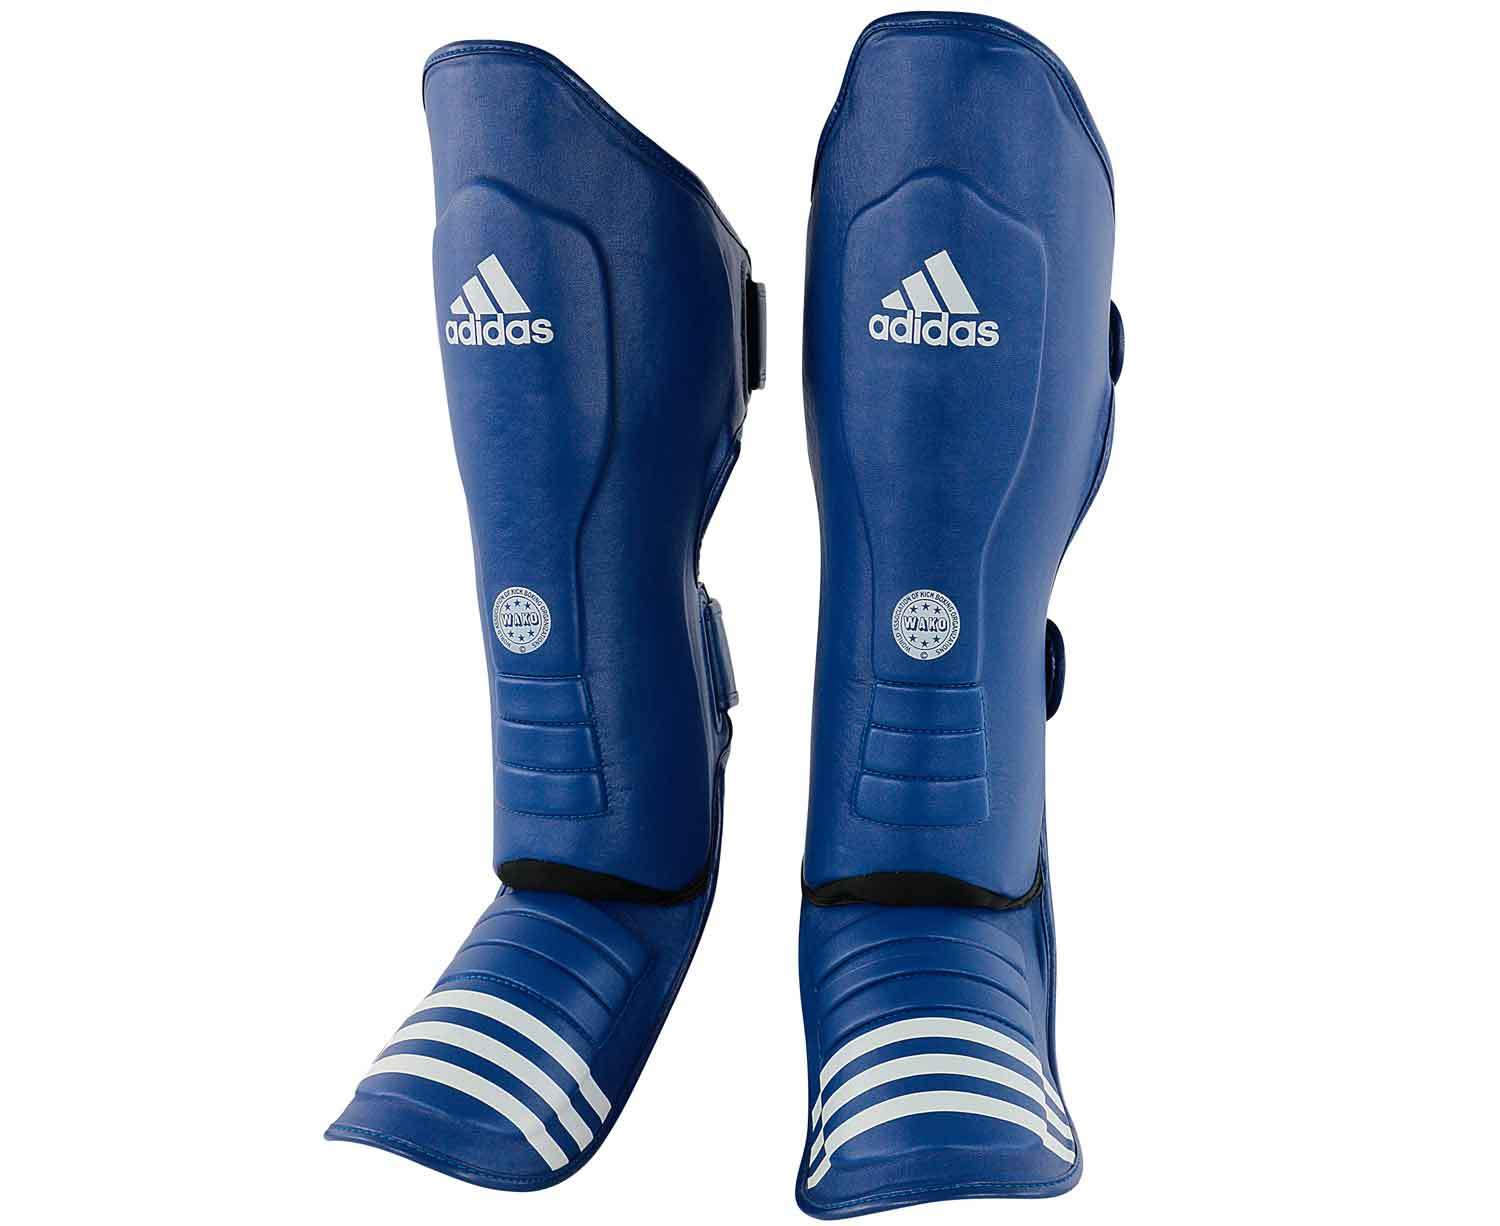 Защита ног ЗАЩИТА ГОЛЕНИ И СТОПЫ WAKO SUPER PRO SHIN INSTEP GUARDS zashchita_goleni_i_stopy_wako_super_pro_shin_instep_guards_sinyaya.jpg